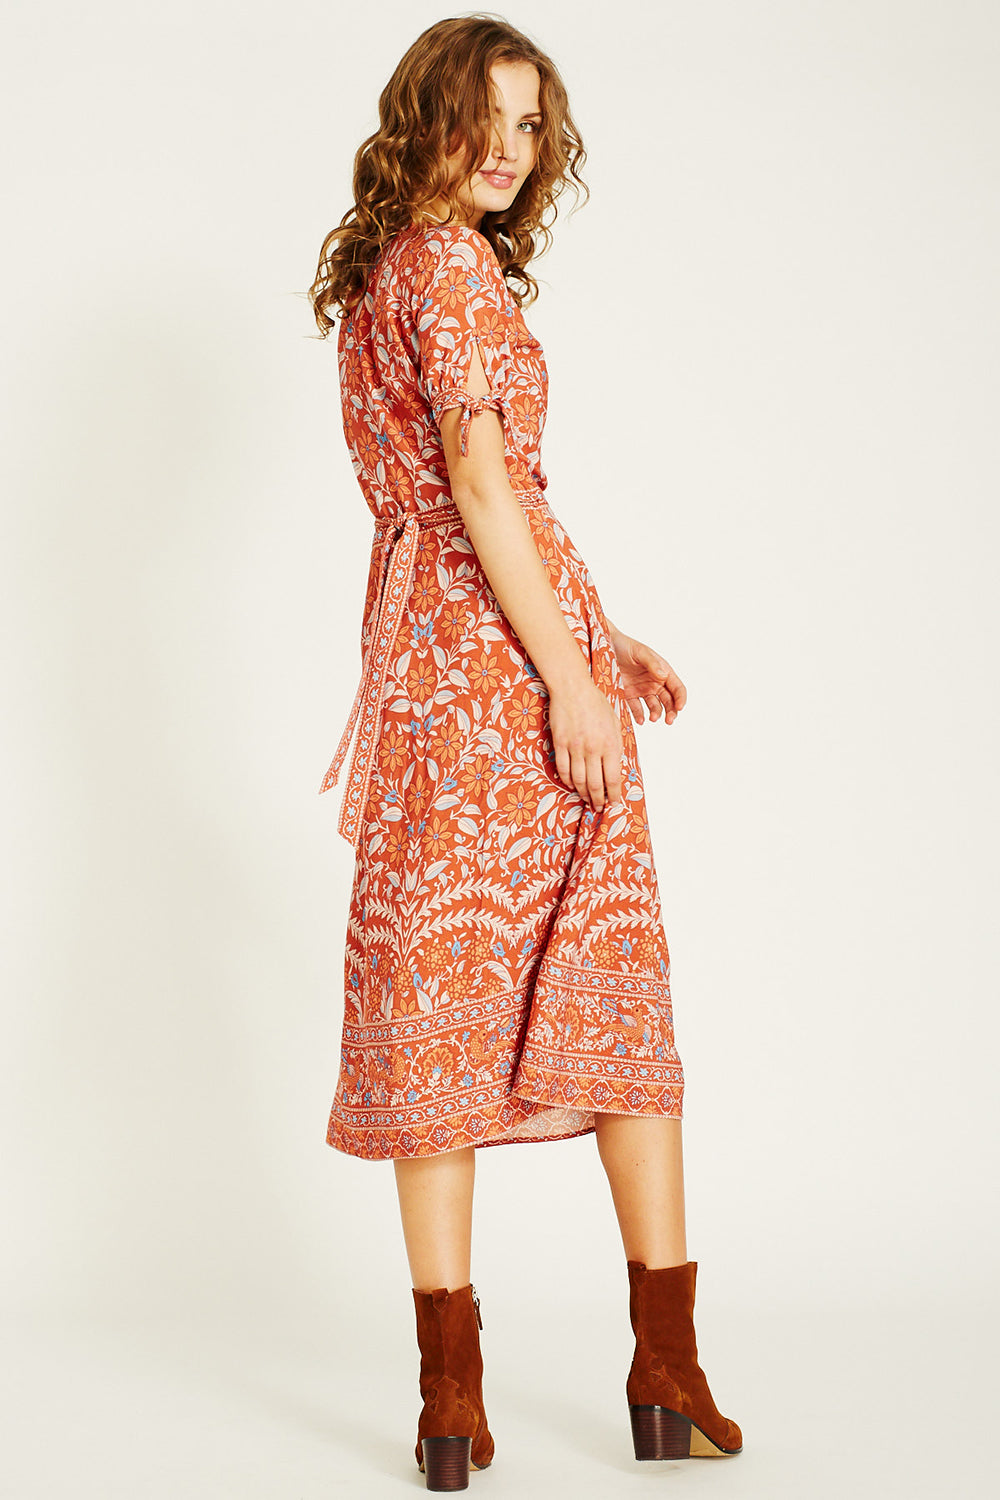 Marigold Midi Wrap Dress in Ochre